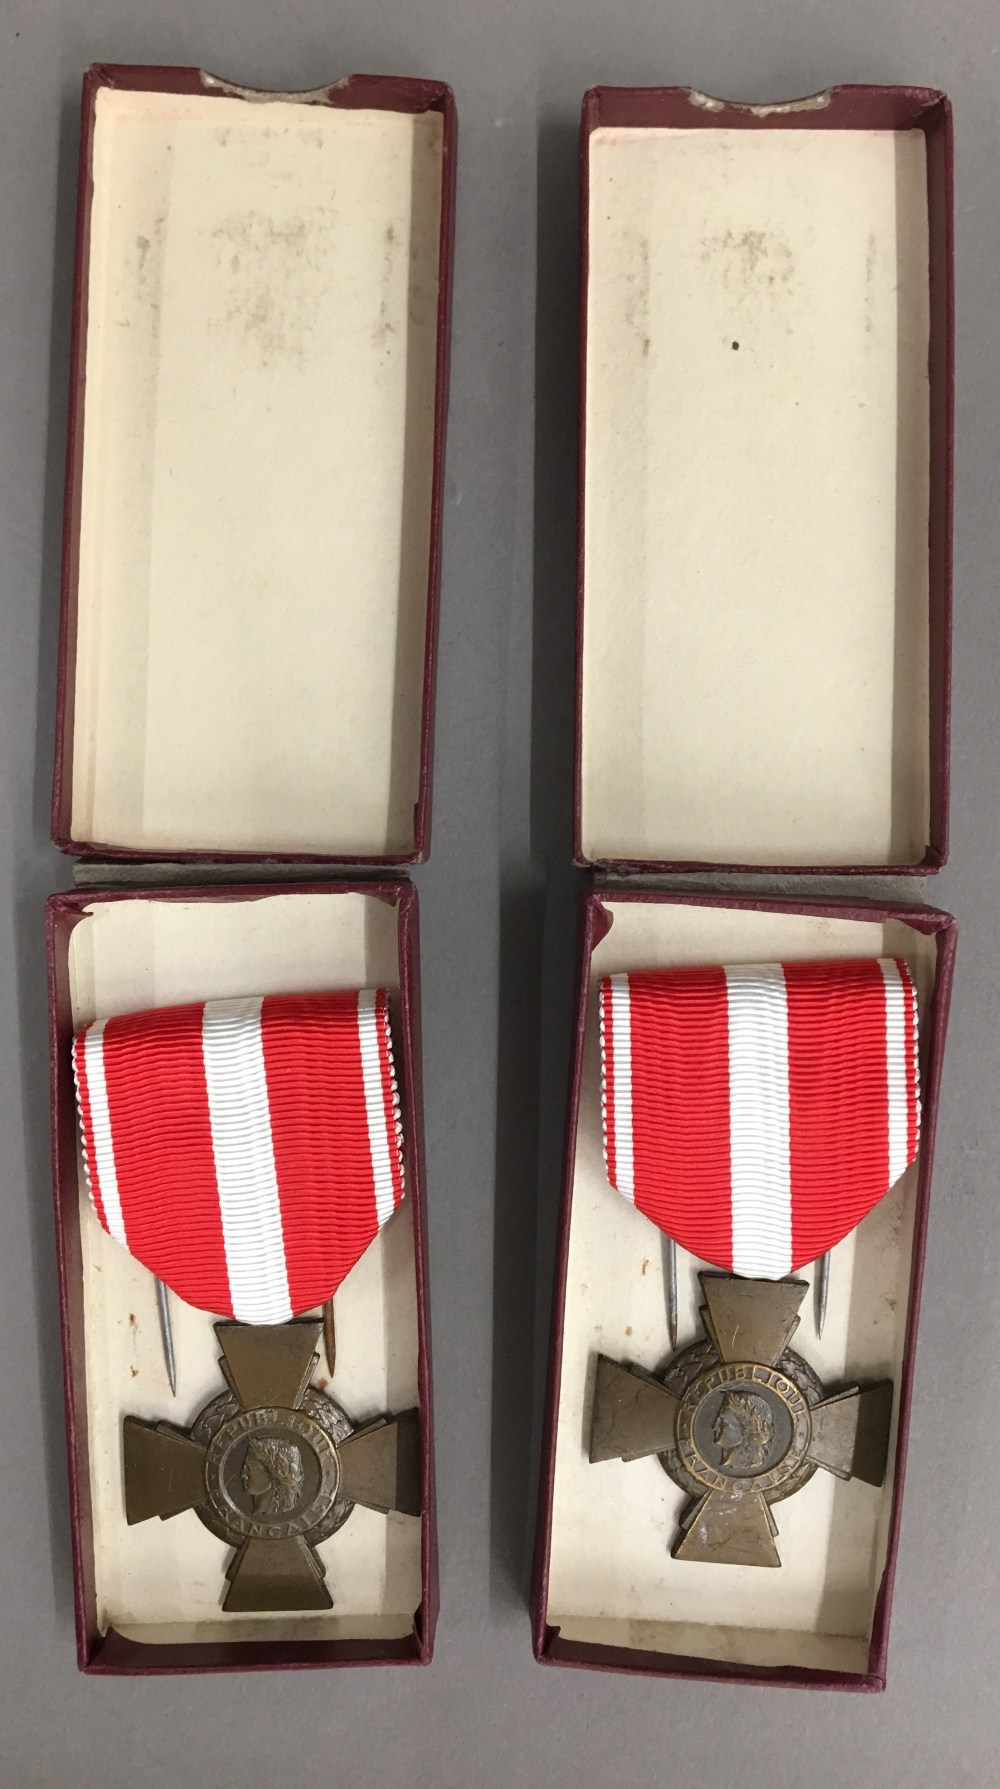 Lot 52 - Two French Republic medals